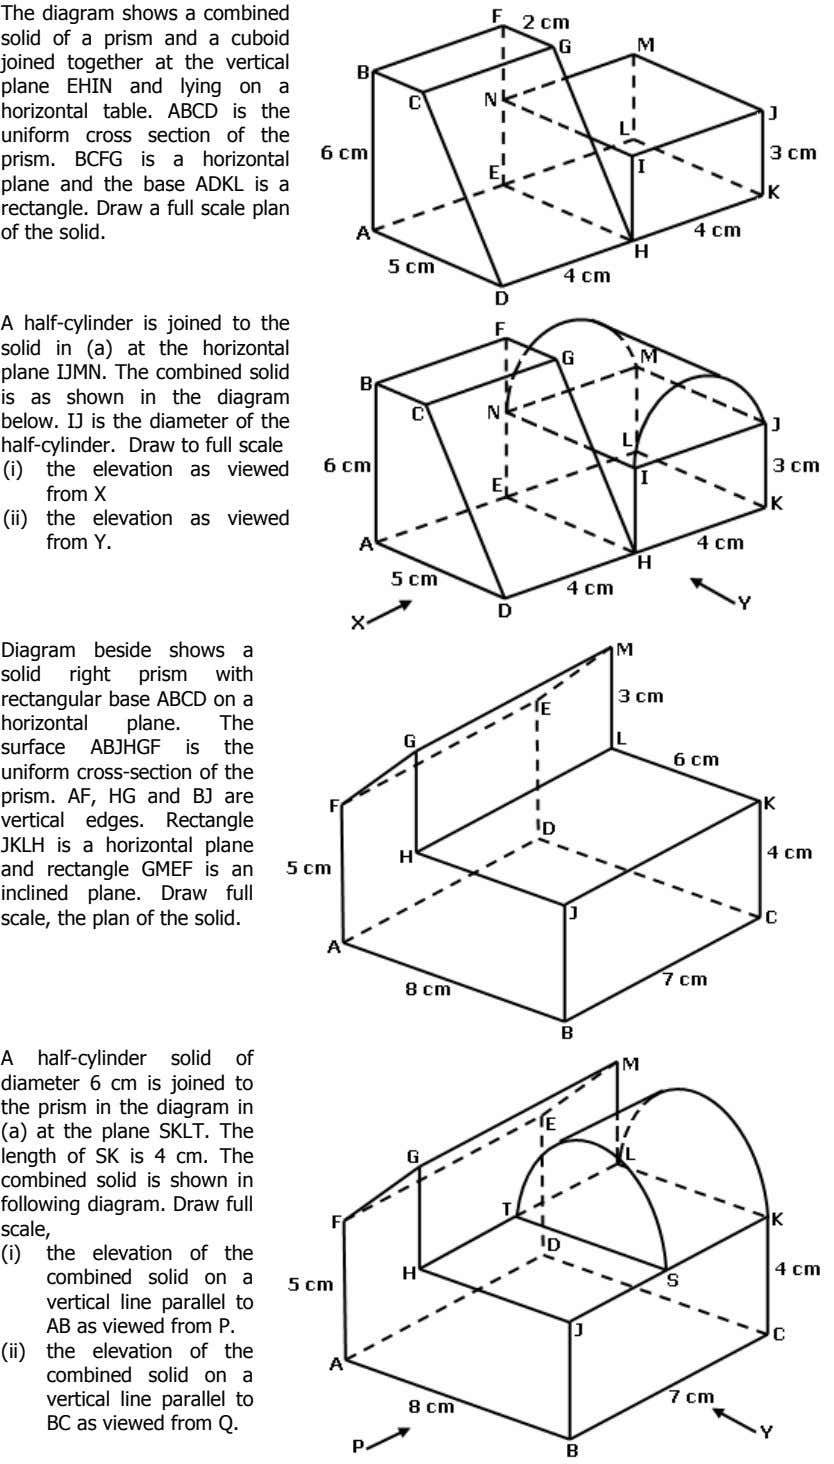 The diagram shows a combined solid of a prism and a cuboid joined together at